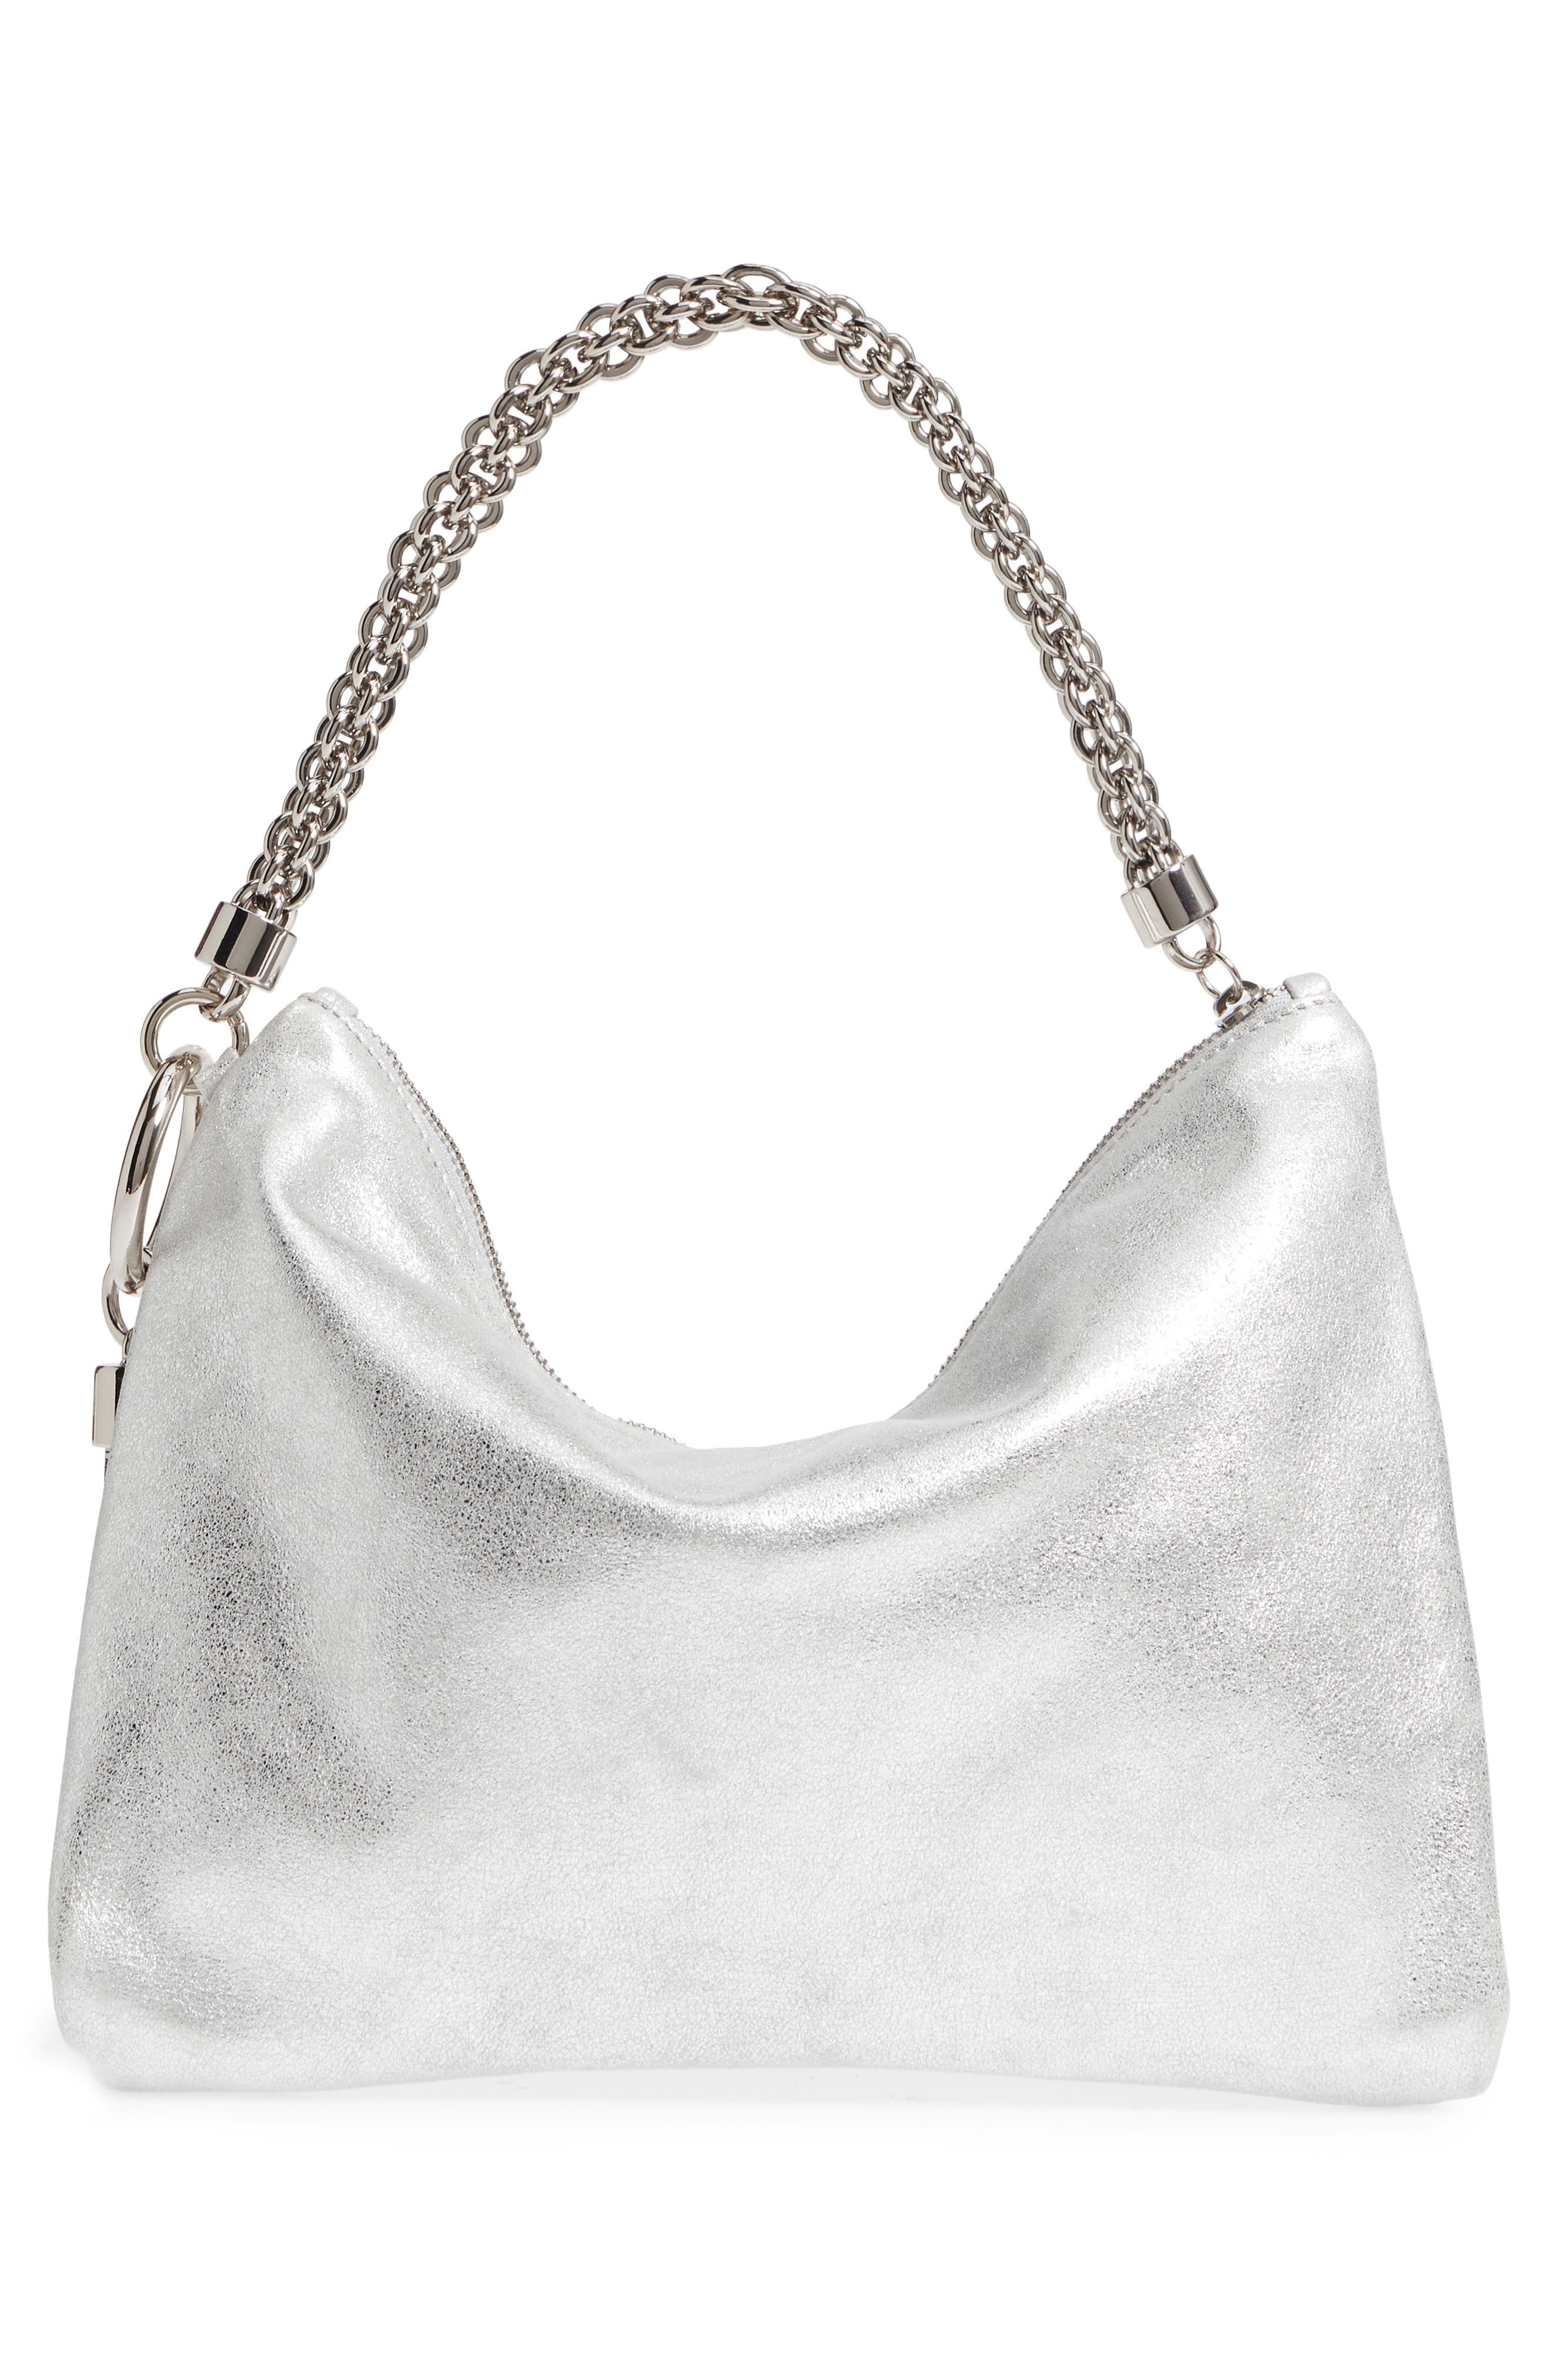 Callie Evening Metallic Leather Clutch,                             Alternate thumbnail 4, color,                             SILVER